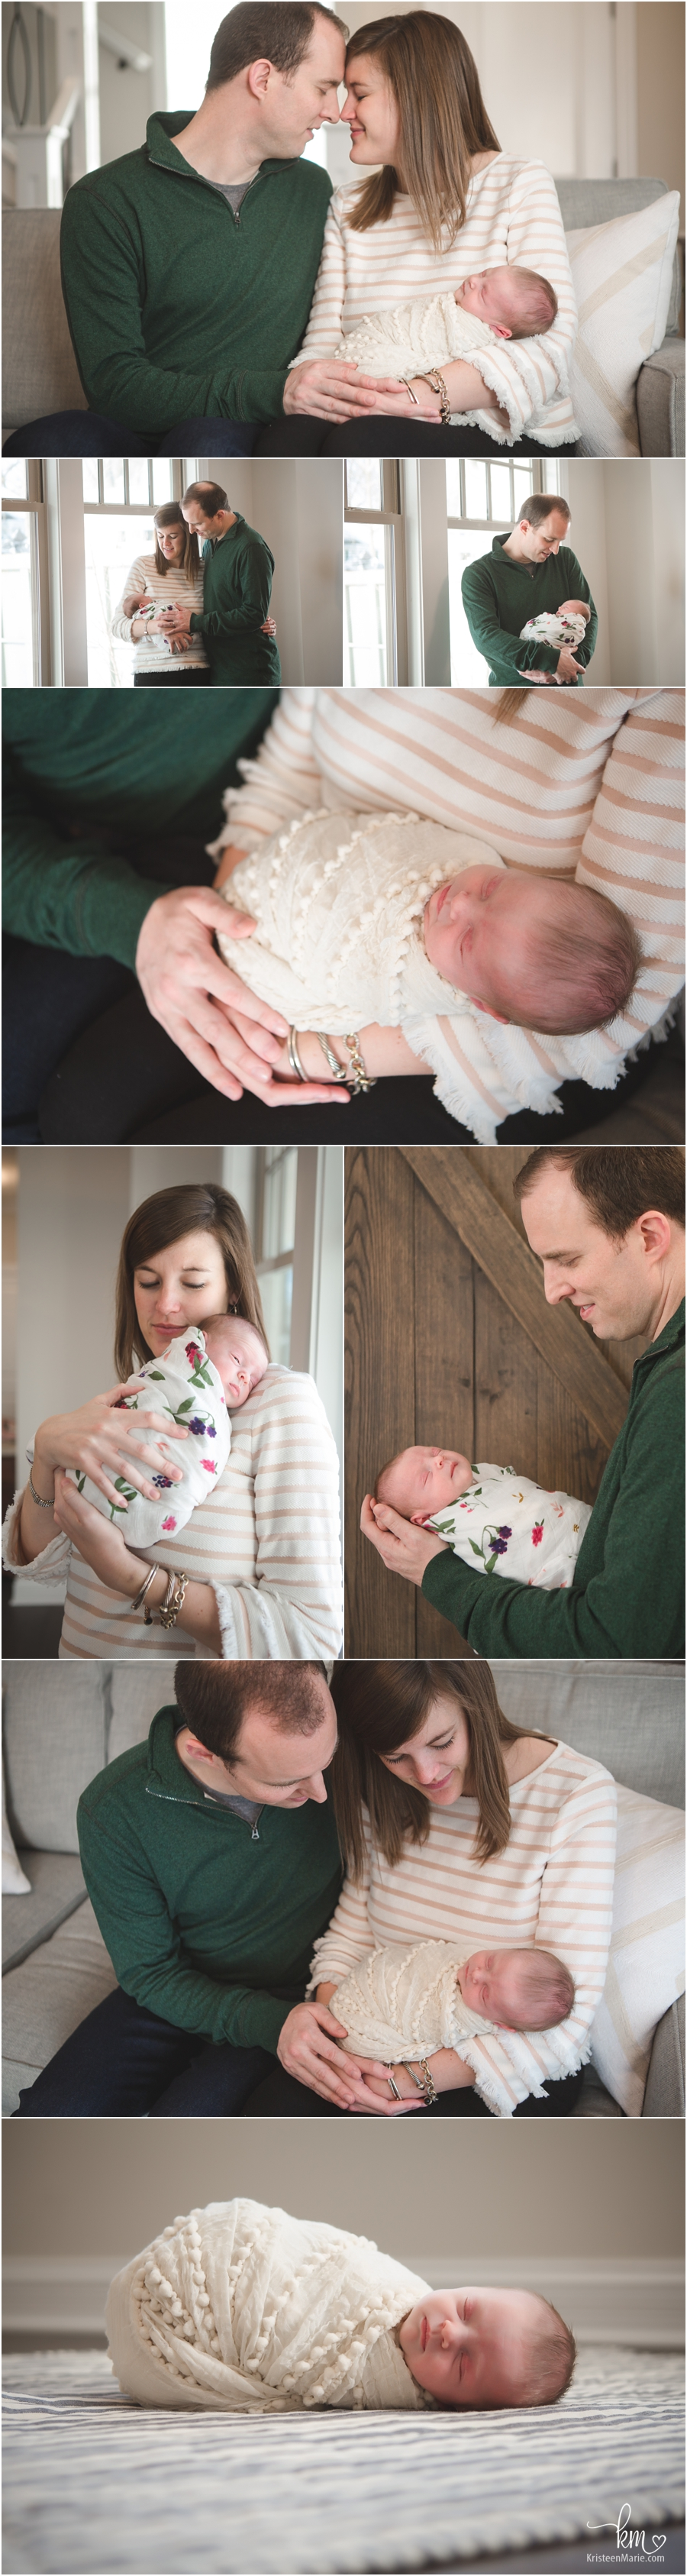 lifestyle newborn pictures - parents and baby poses